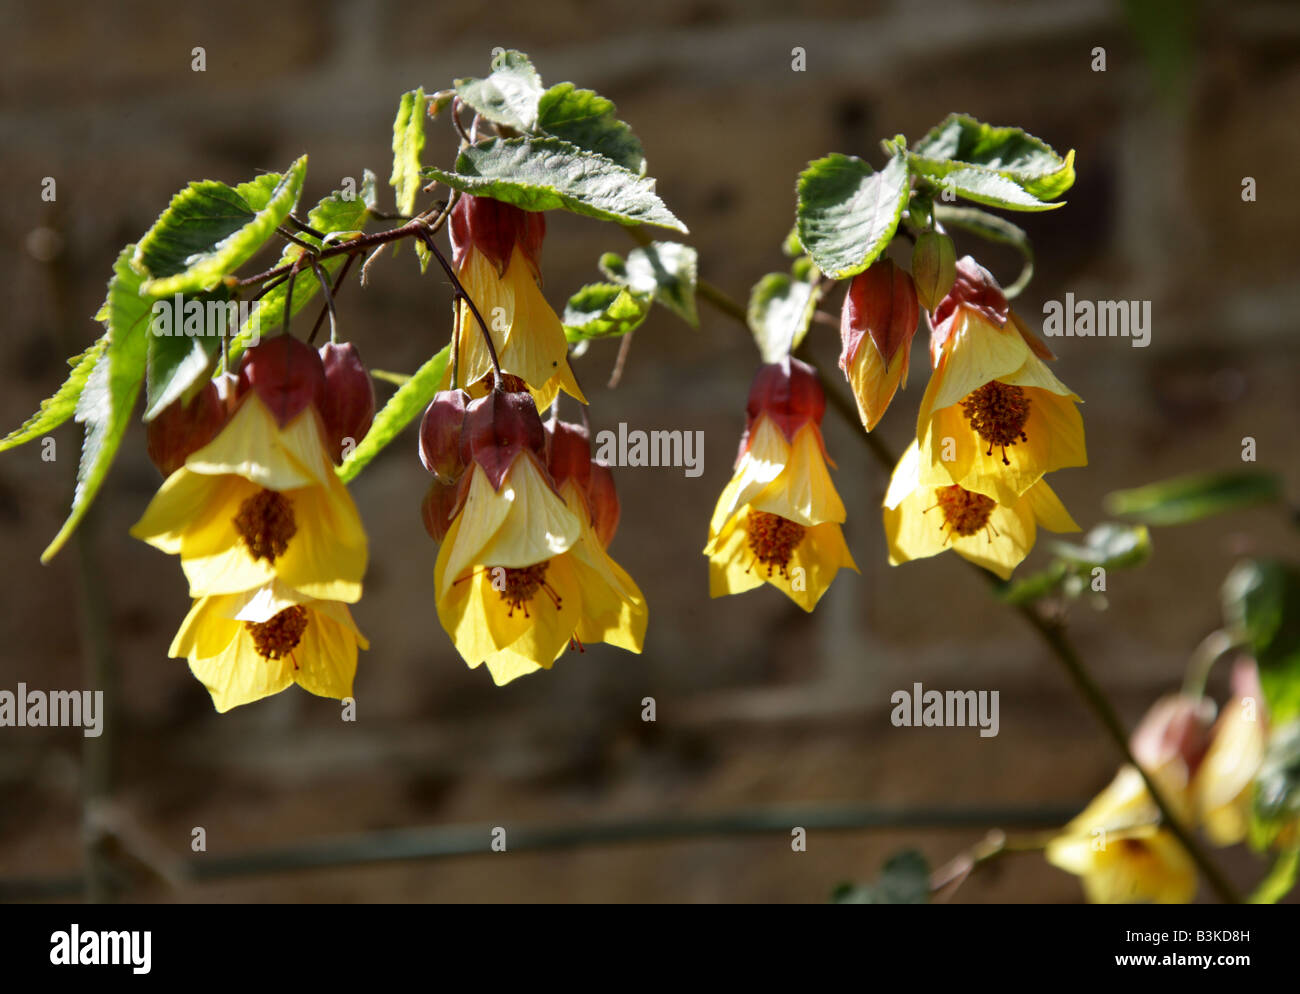 Trailing Abutilon aka Chinese Bell Flower, Chinese Lantern, Mallow, Indian Mallow, and Flowering Maple, Abutilon - Stock Image